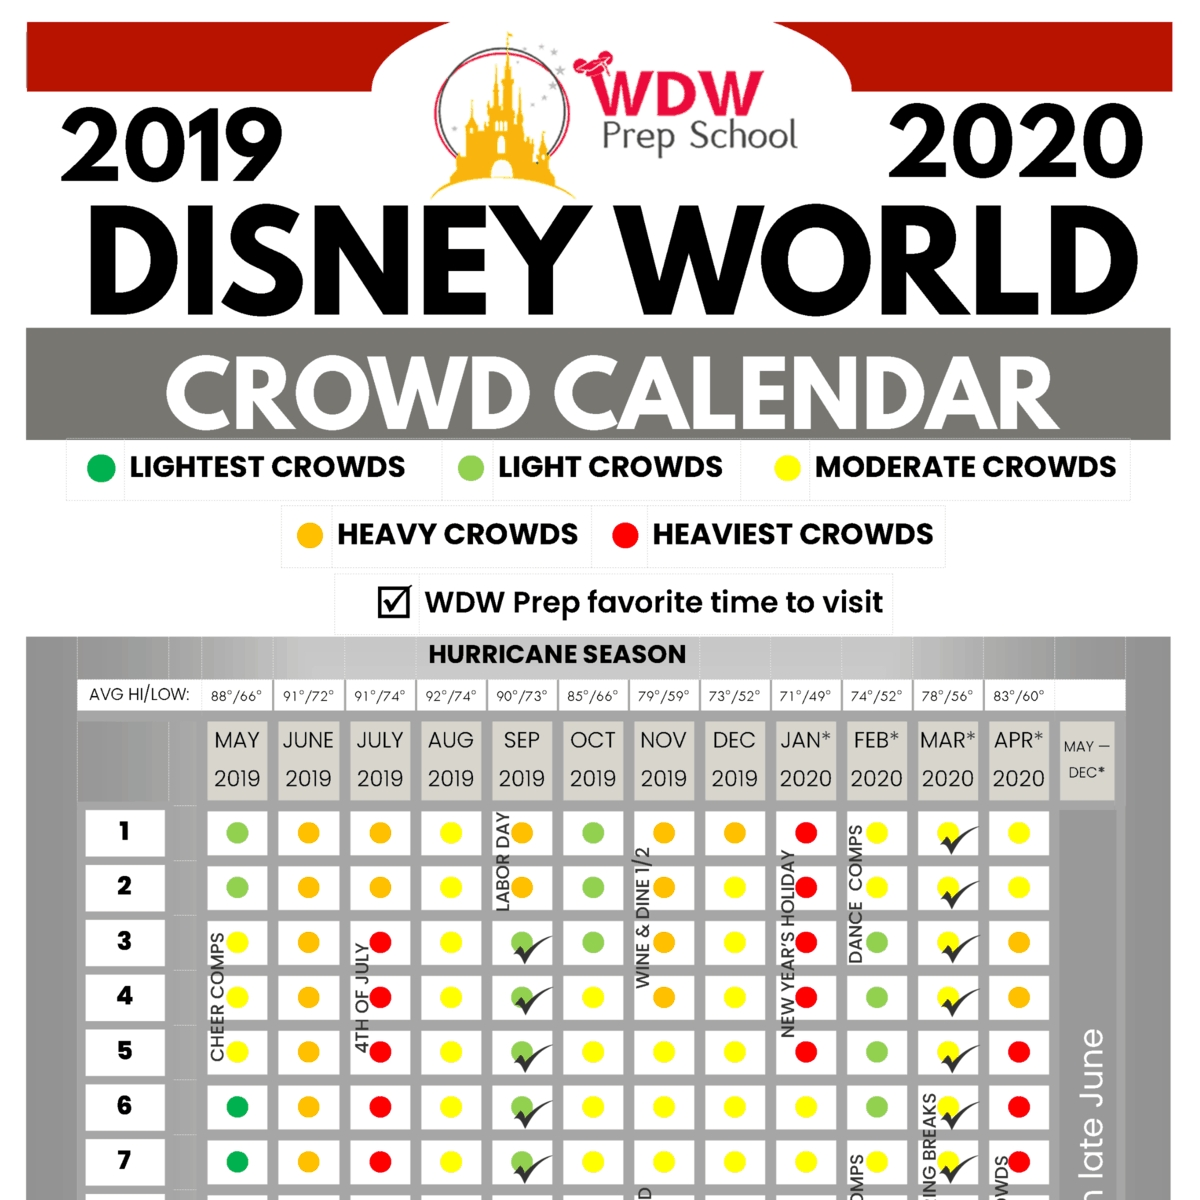 Disney World 2019 & 2020 Crowd Calendar (Best Times To Go-Disney World January 2020 Crowd Calendar